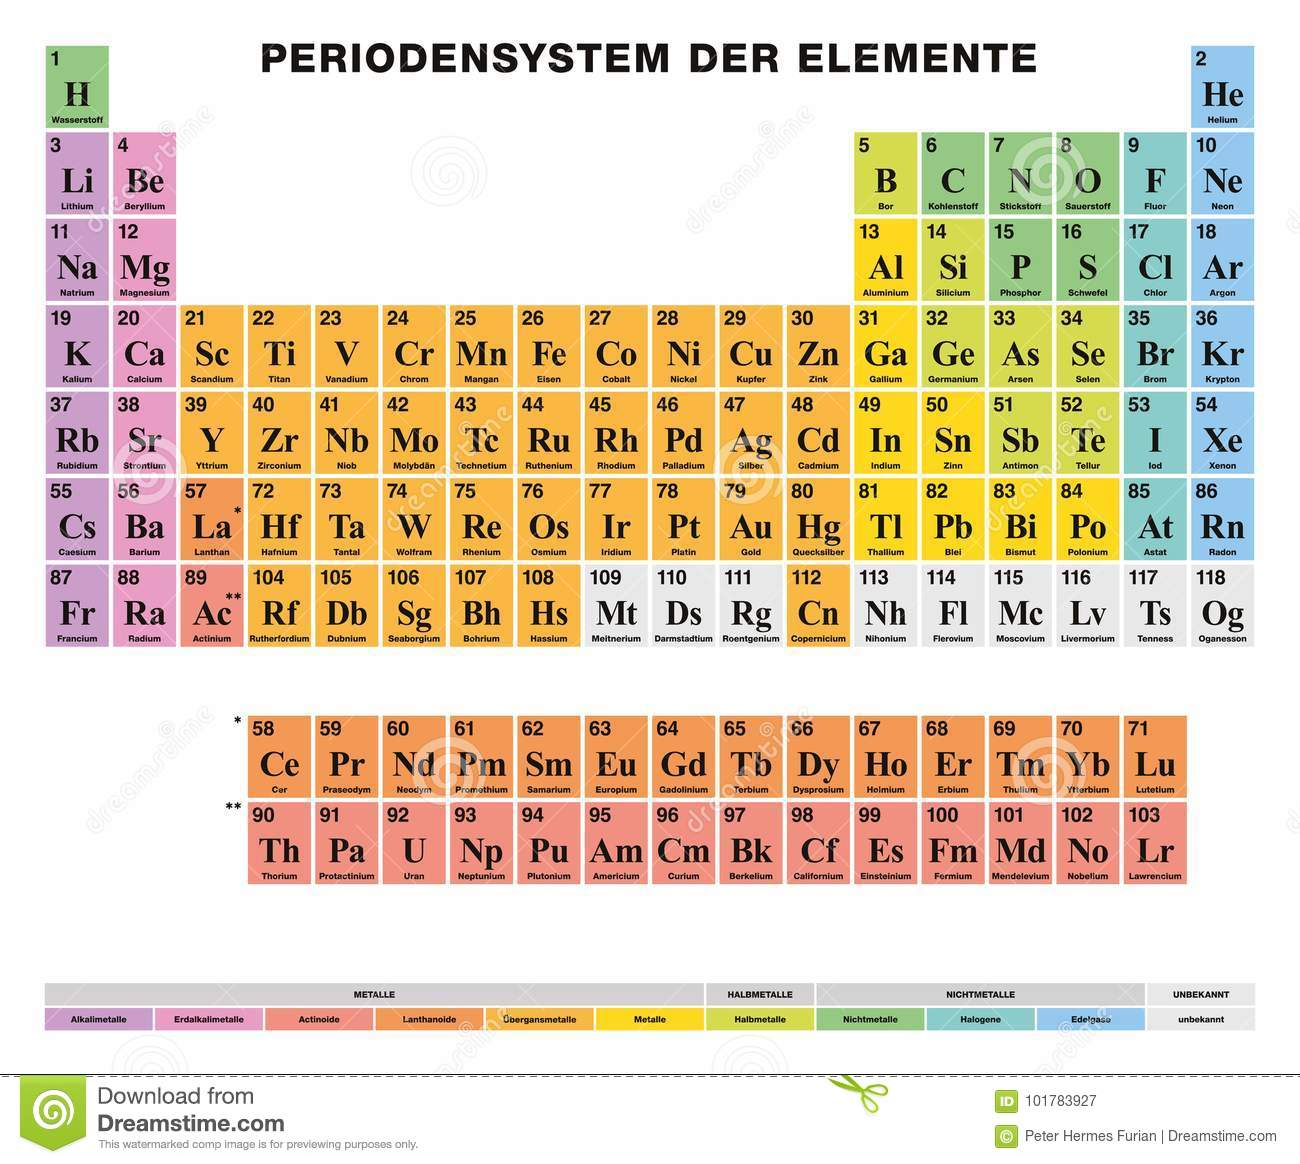 Periodic table of the elements german labeling colored cells periodic table of the elements german labeling colored cells gamestrikefo Gallery